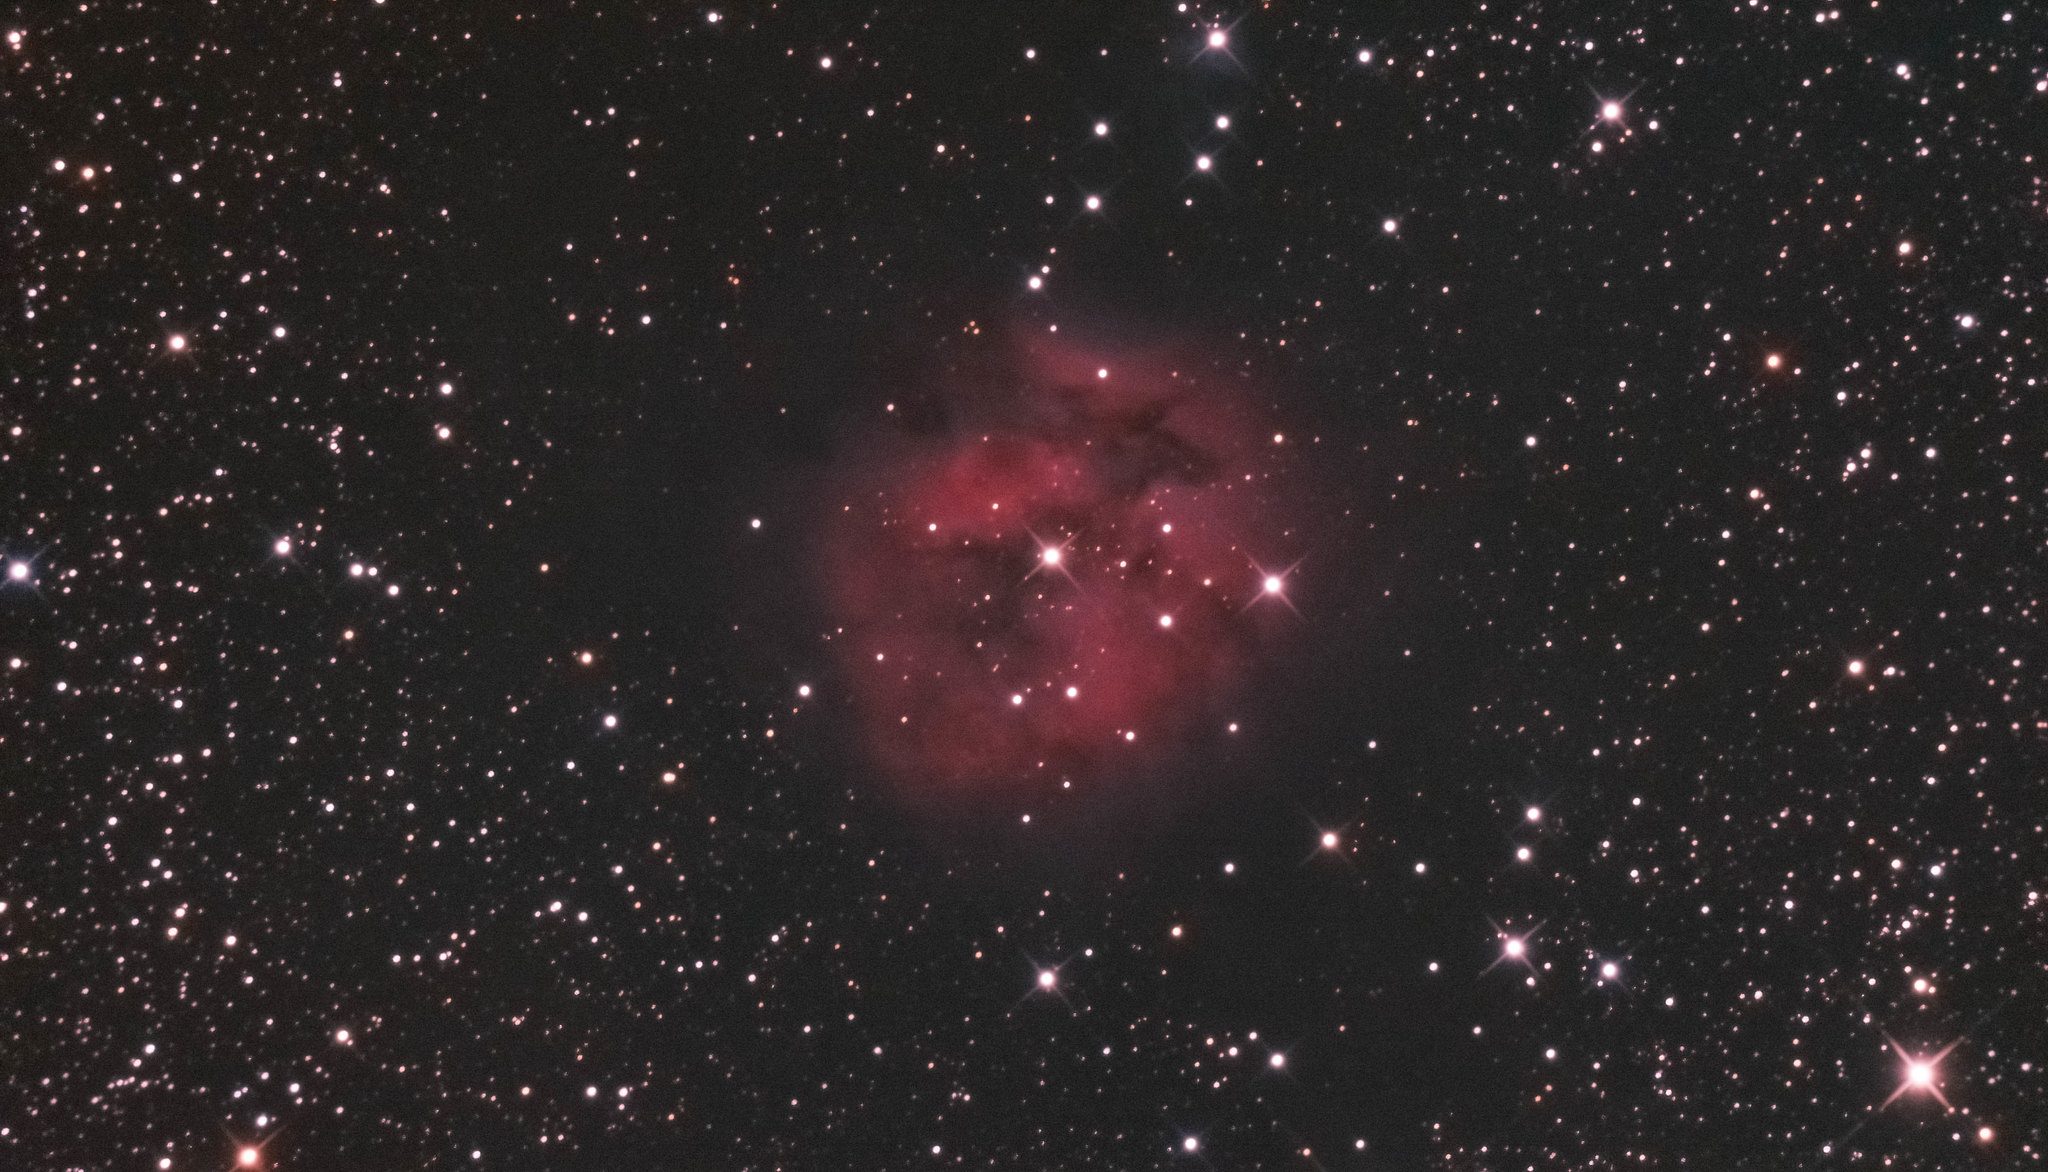 IC 5146 C19 Cocoon Nebula 120421 SLCC guided LProMax (1 of 1) My first shot at this beautiful nebula in Cygnus. 50 x 150s at 600/30. Nigel Goodman